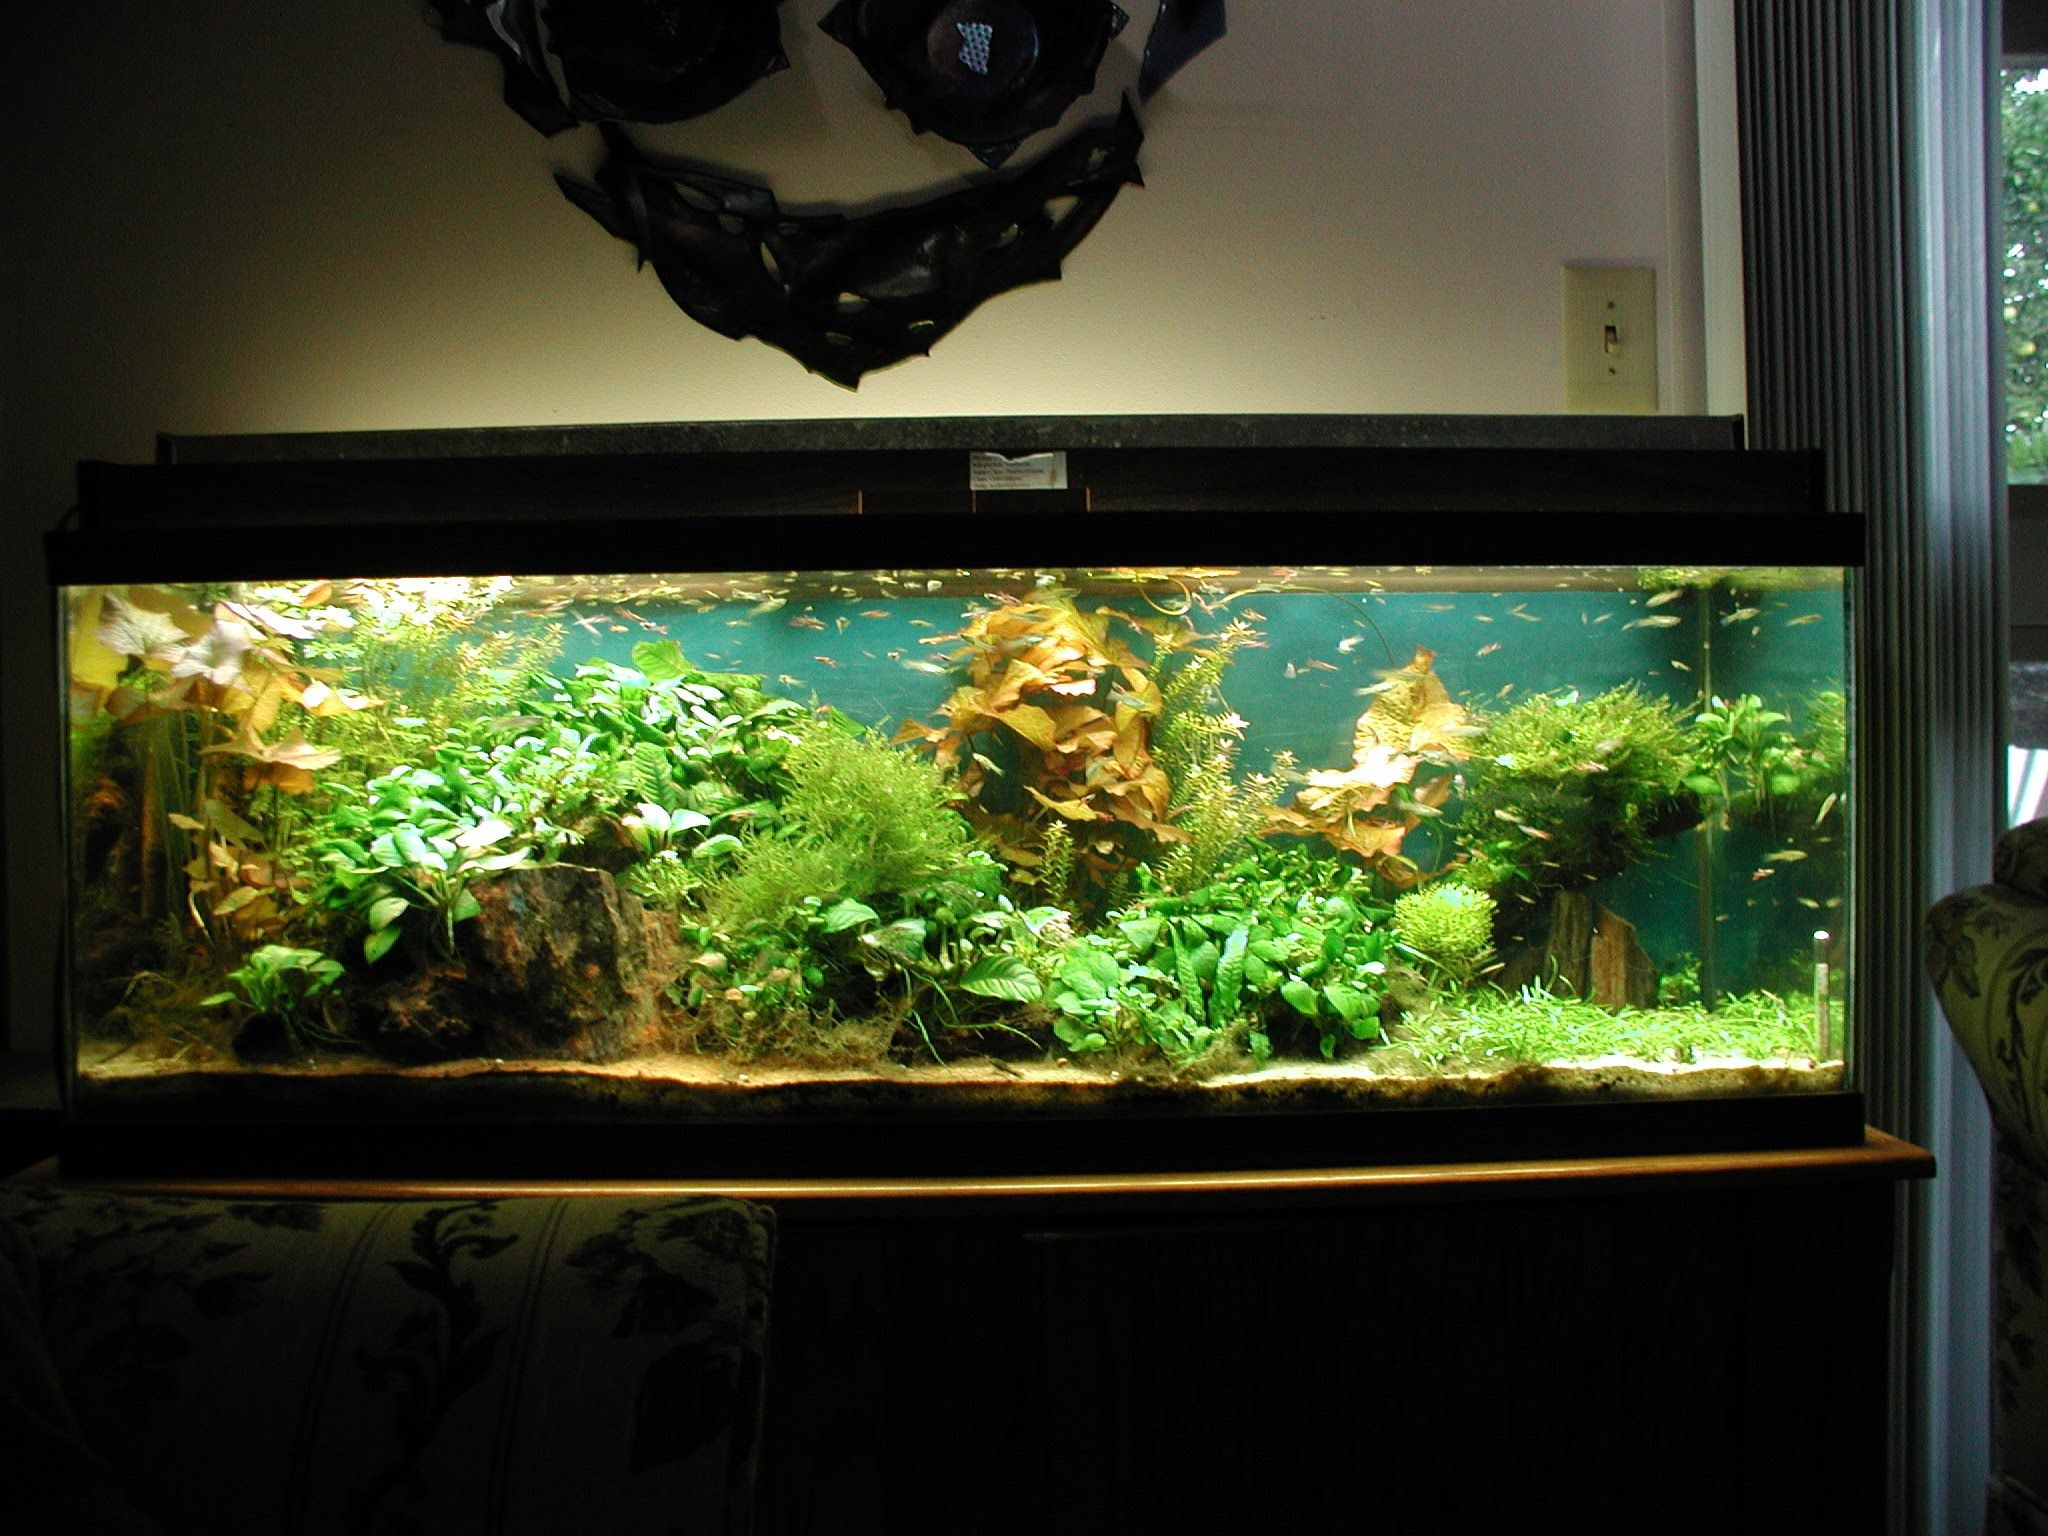 Fish Aquarium - Find this pin and more on fish tank aquarium